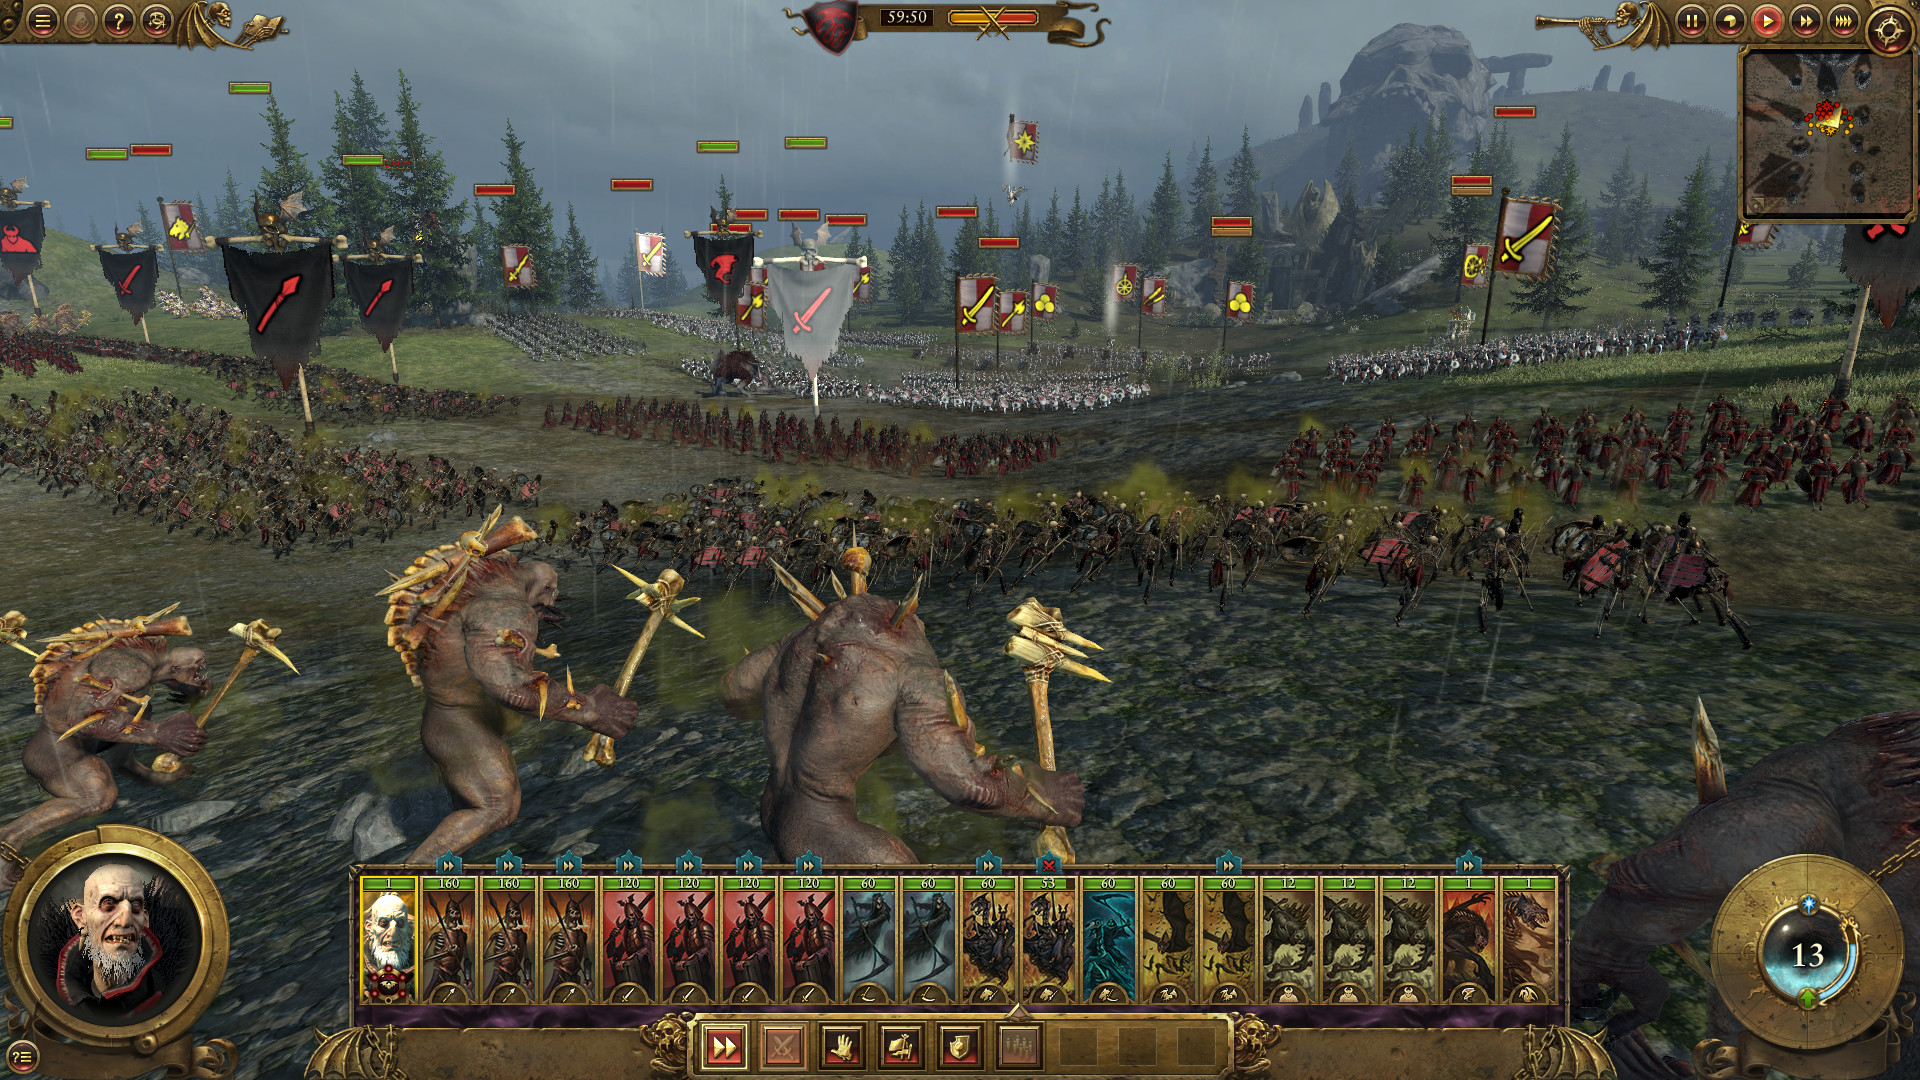 ss_2bac98669658d79d19bffa1b4ce3fddb0f96e132.1920x1080 Total War: Warhammer First Impressions